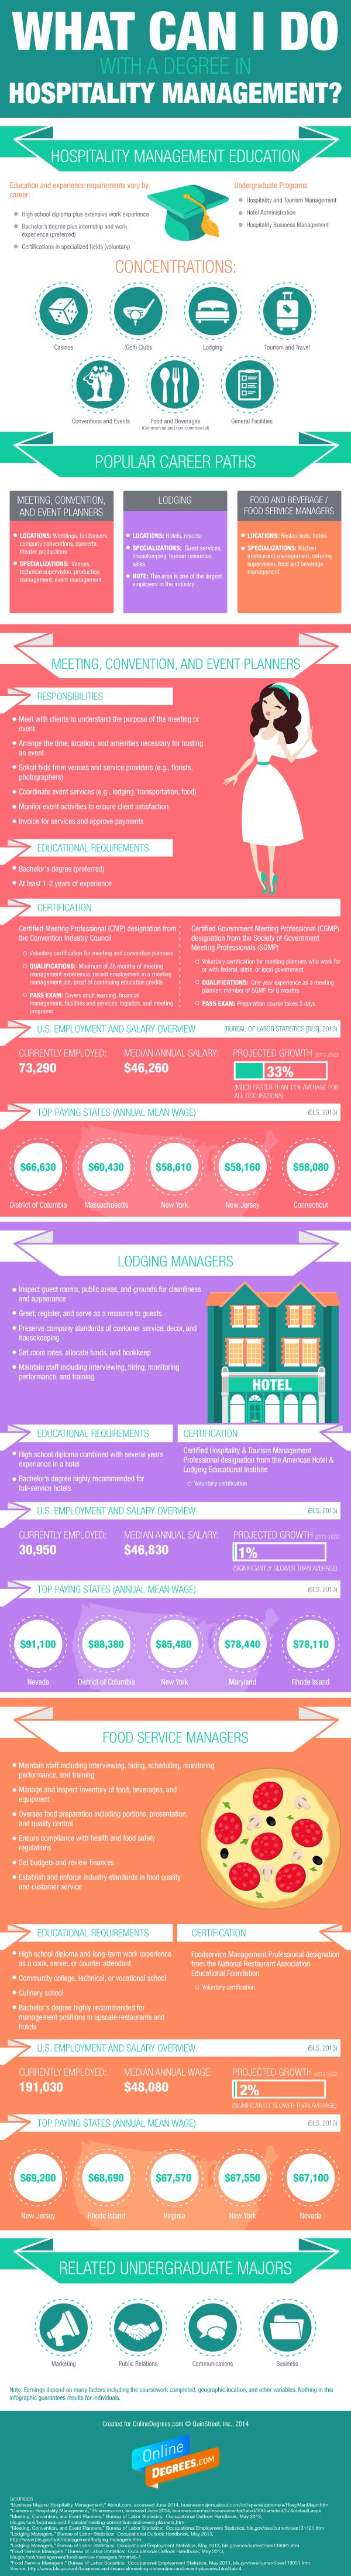 Best 25 Hotel career ideas – Hotel Motel Management Jobs